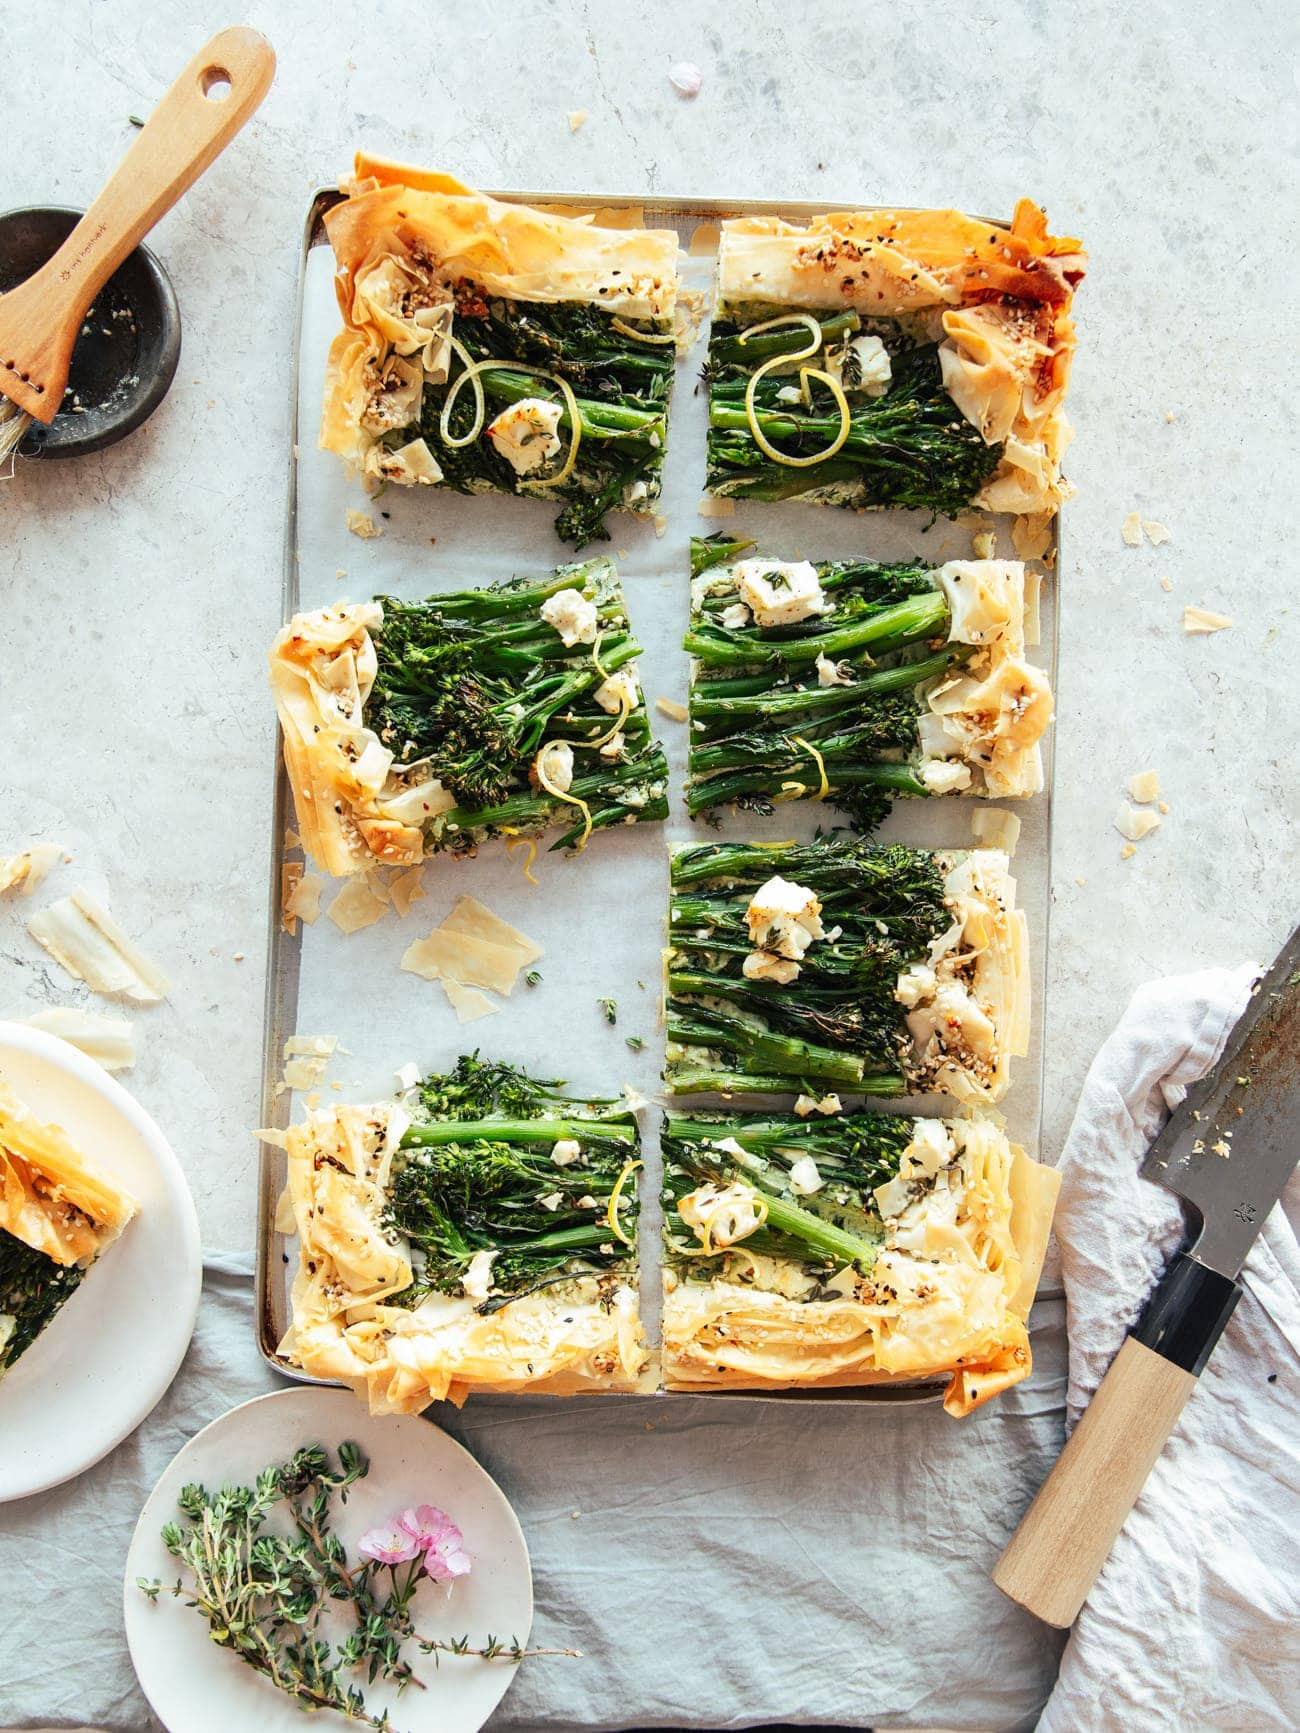 A filo pastry tart with broccoli and feta, on a ricotta base by Izy Hossack